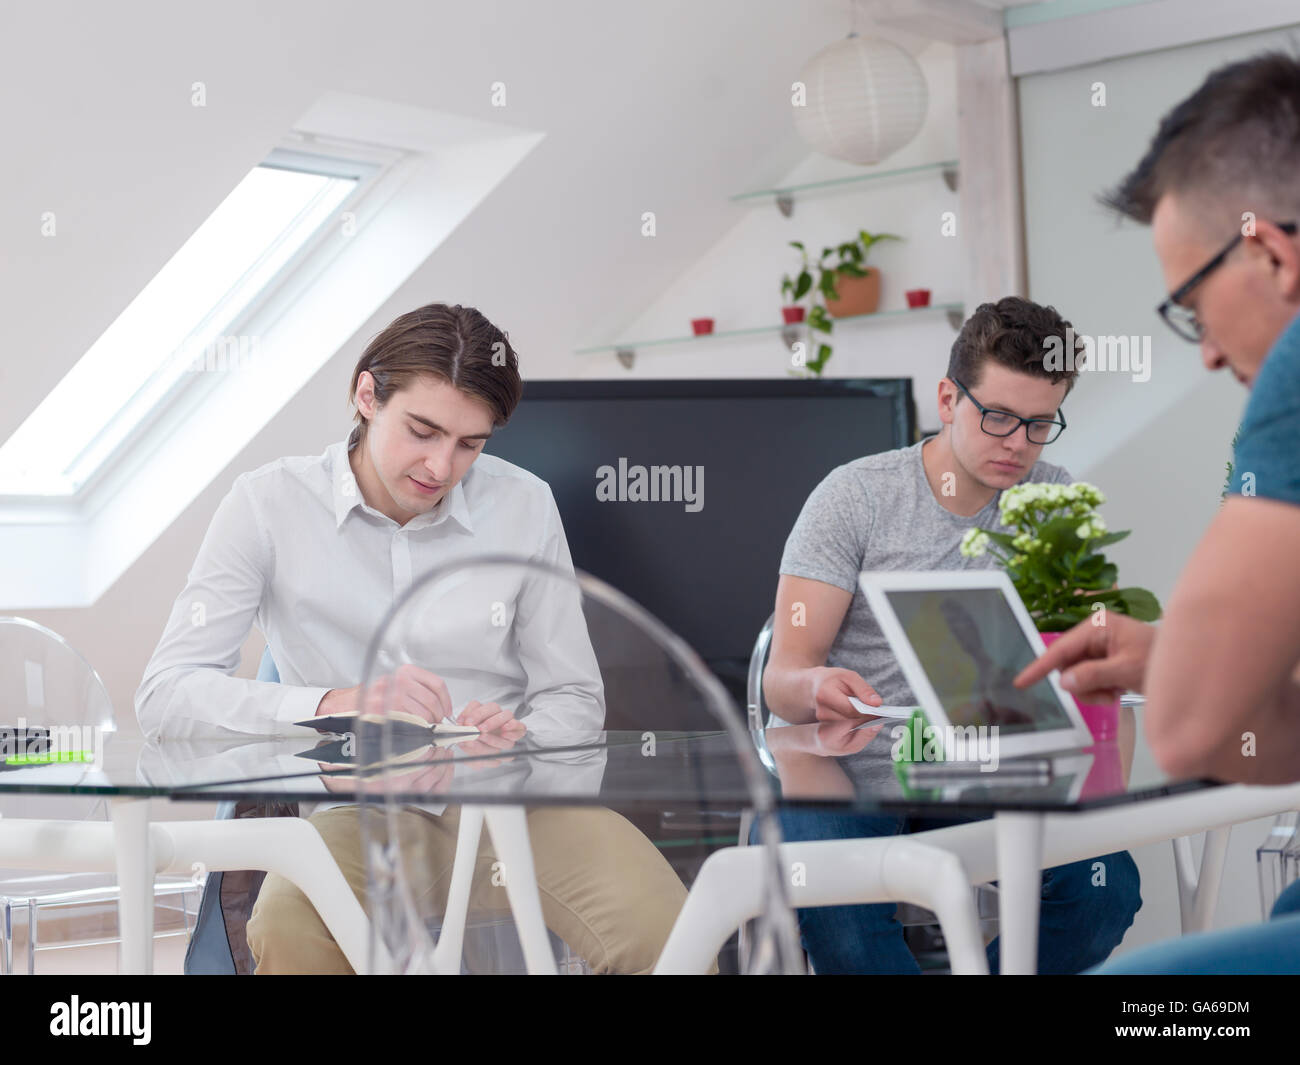 Making great decisions. Young people staring a new business and discussing something with their colleagues at office - Stock Image